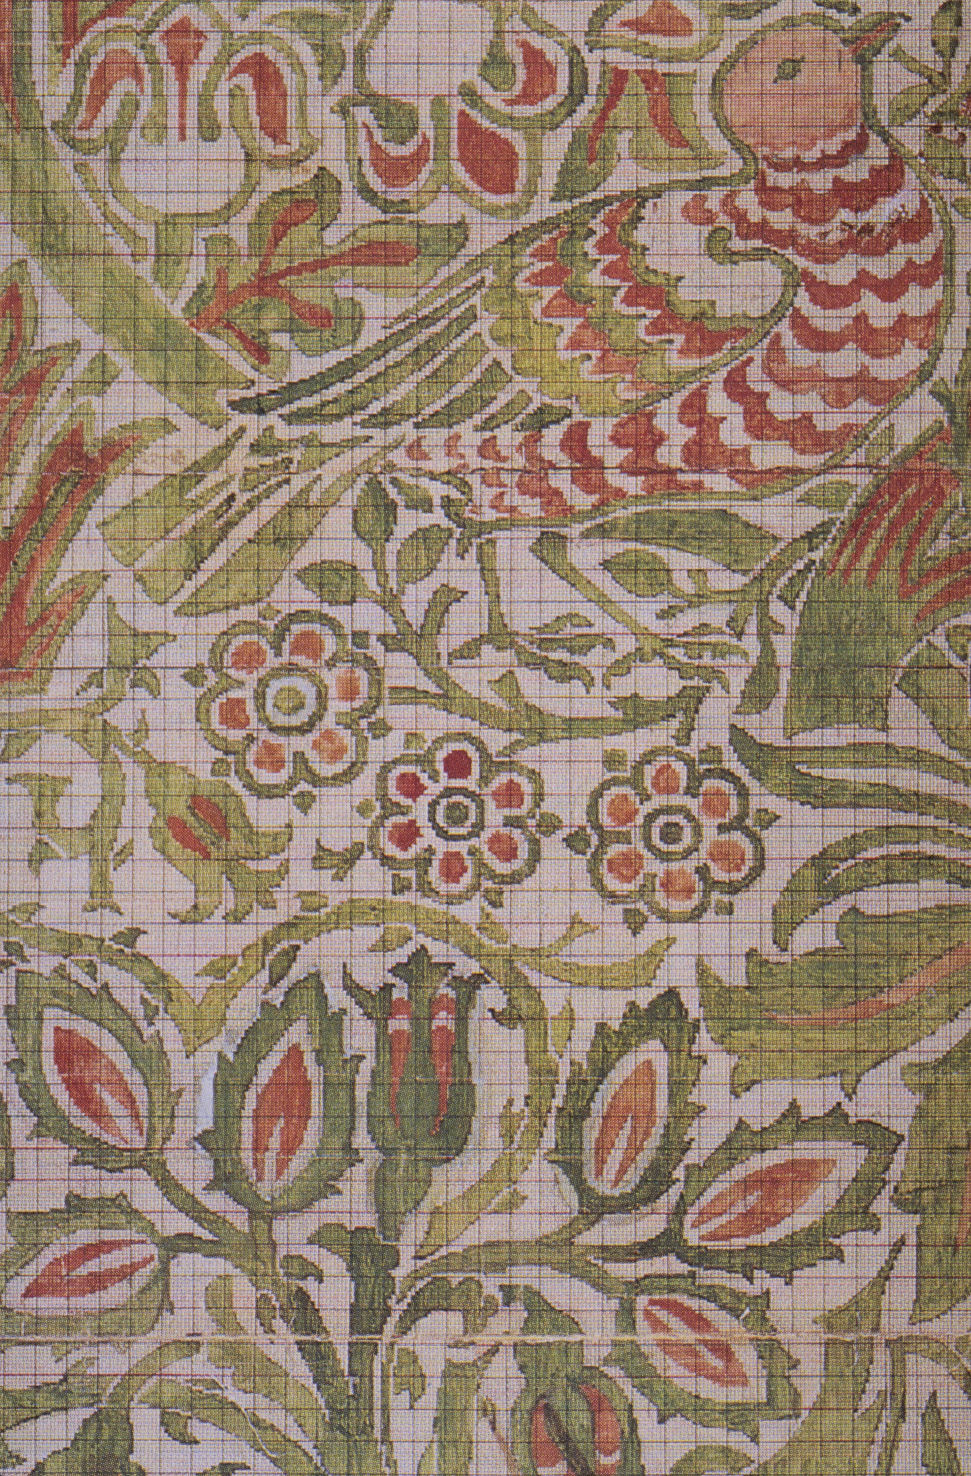 Textile design wikipedia for Architecture textile